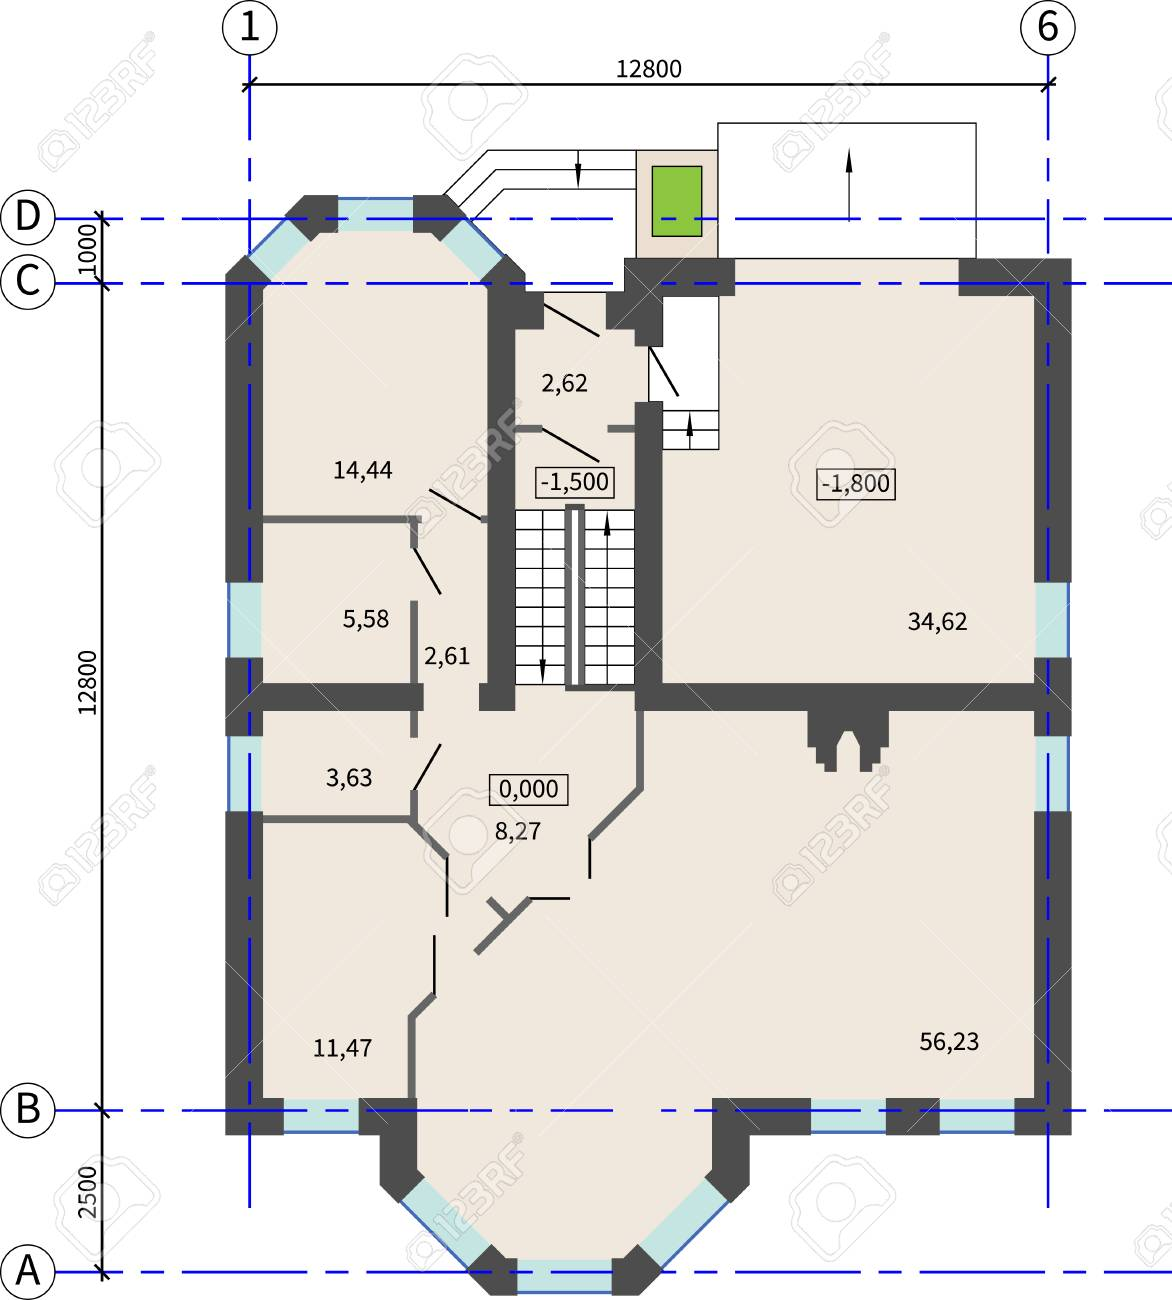 floor plan furniture vector. First Floor Plan Of An Apartment House Without Furniture. Vector Drawing. Architectural Background. Furniture